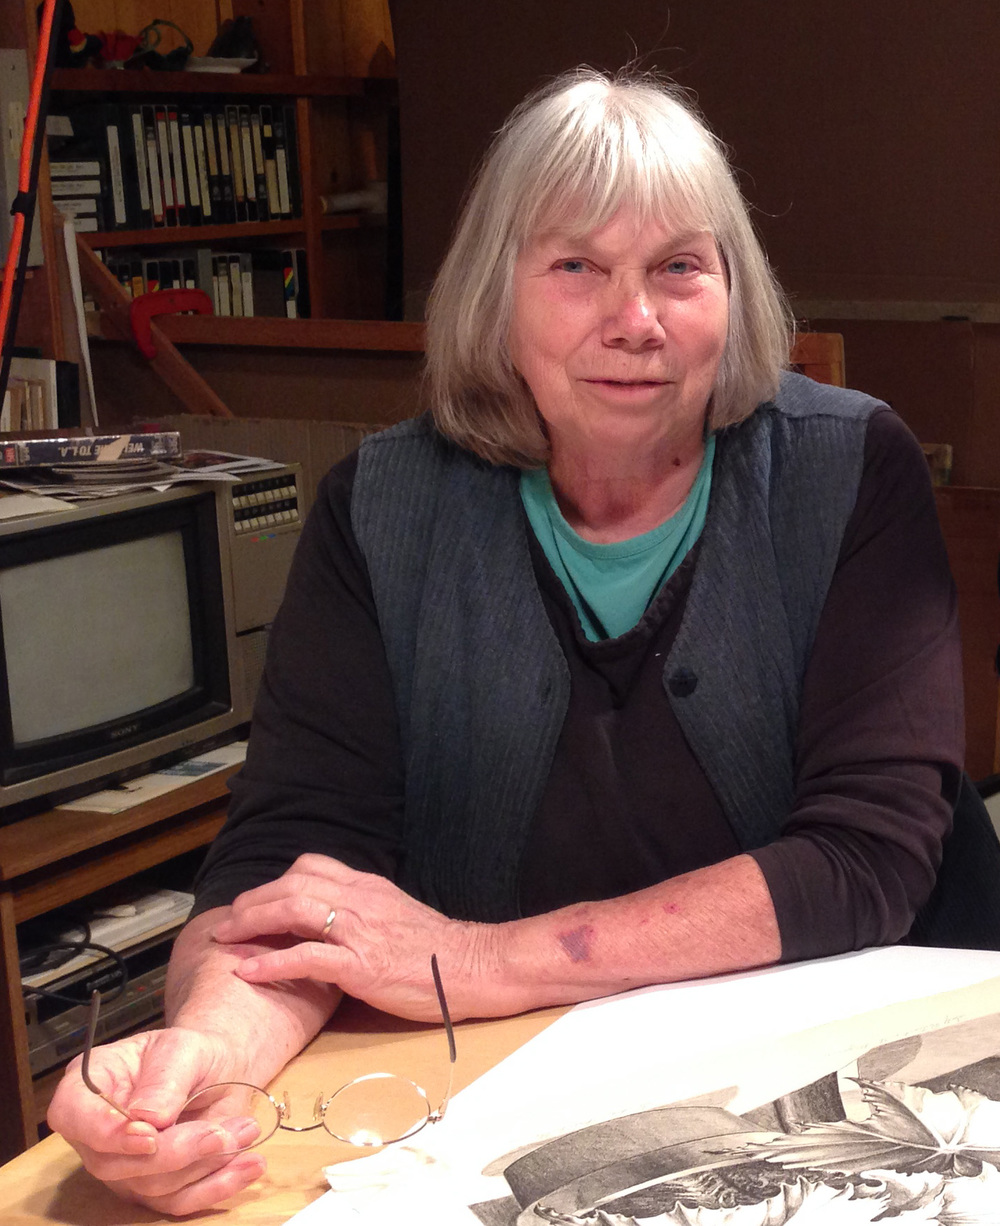 Sondra Freckelton, in her studio near Oneonta, NY, April, 2014